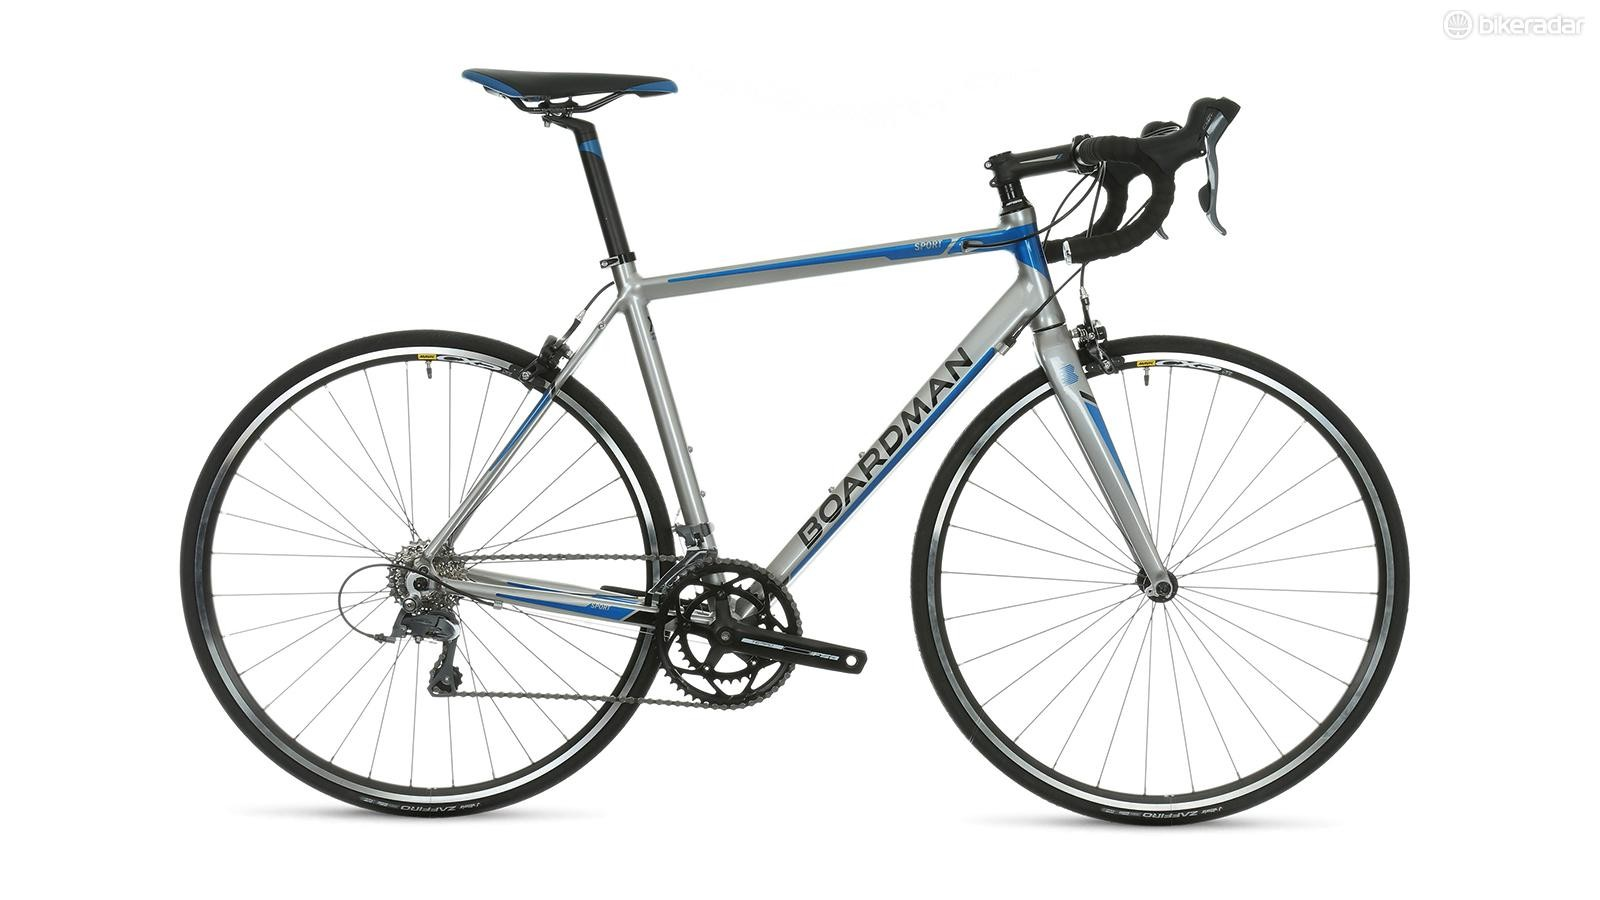 Boardman's Road Sport in grey is cheaper than the white version